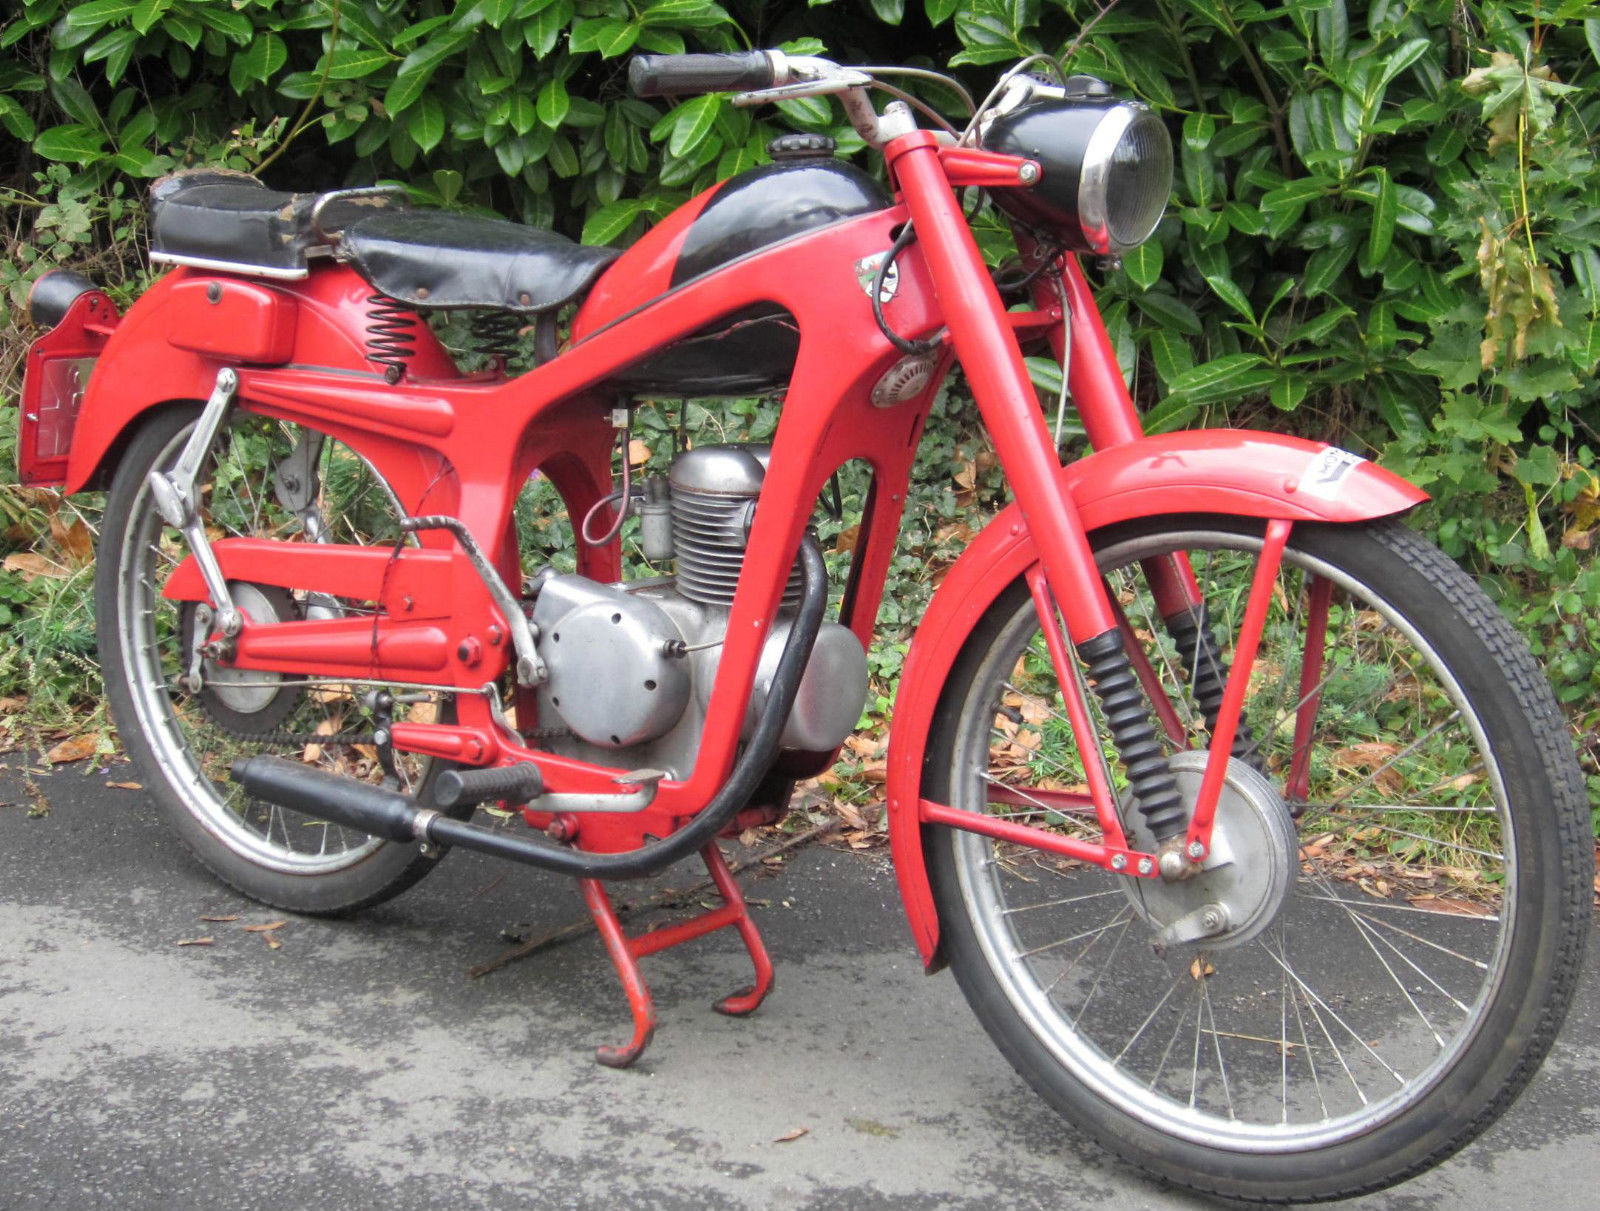 Used 150cc Engine Used Free Engine Image For User Manual